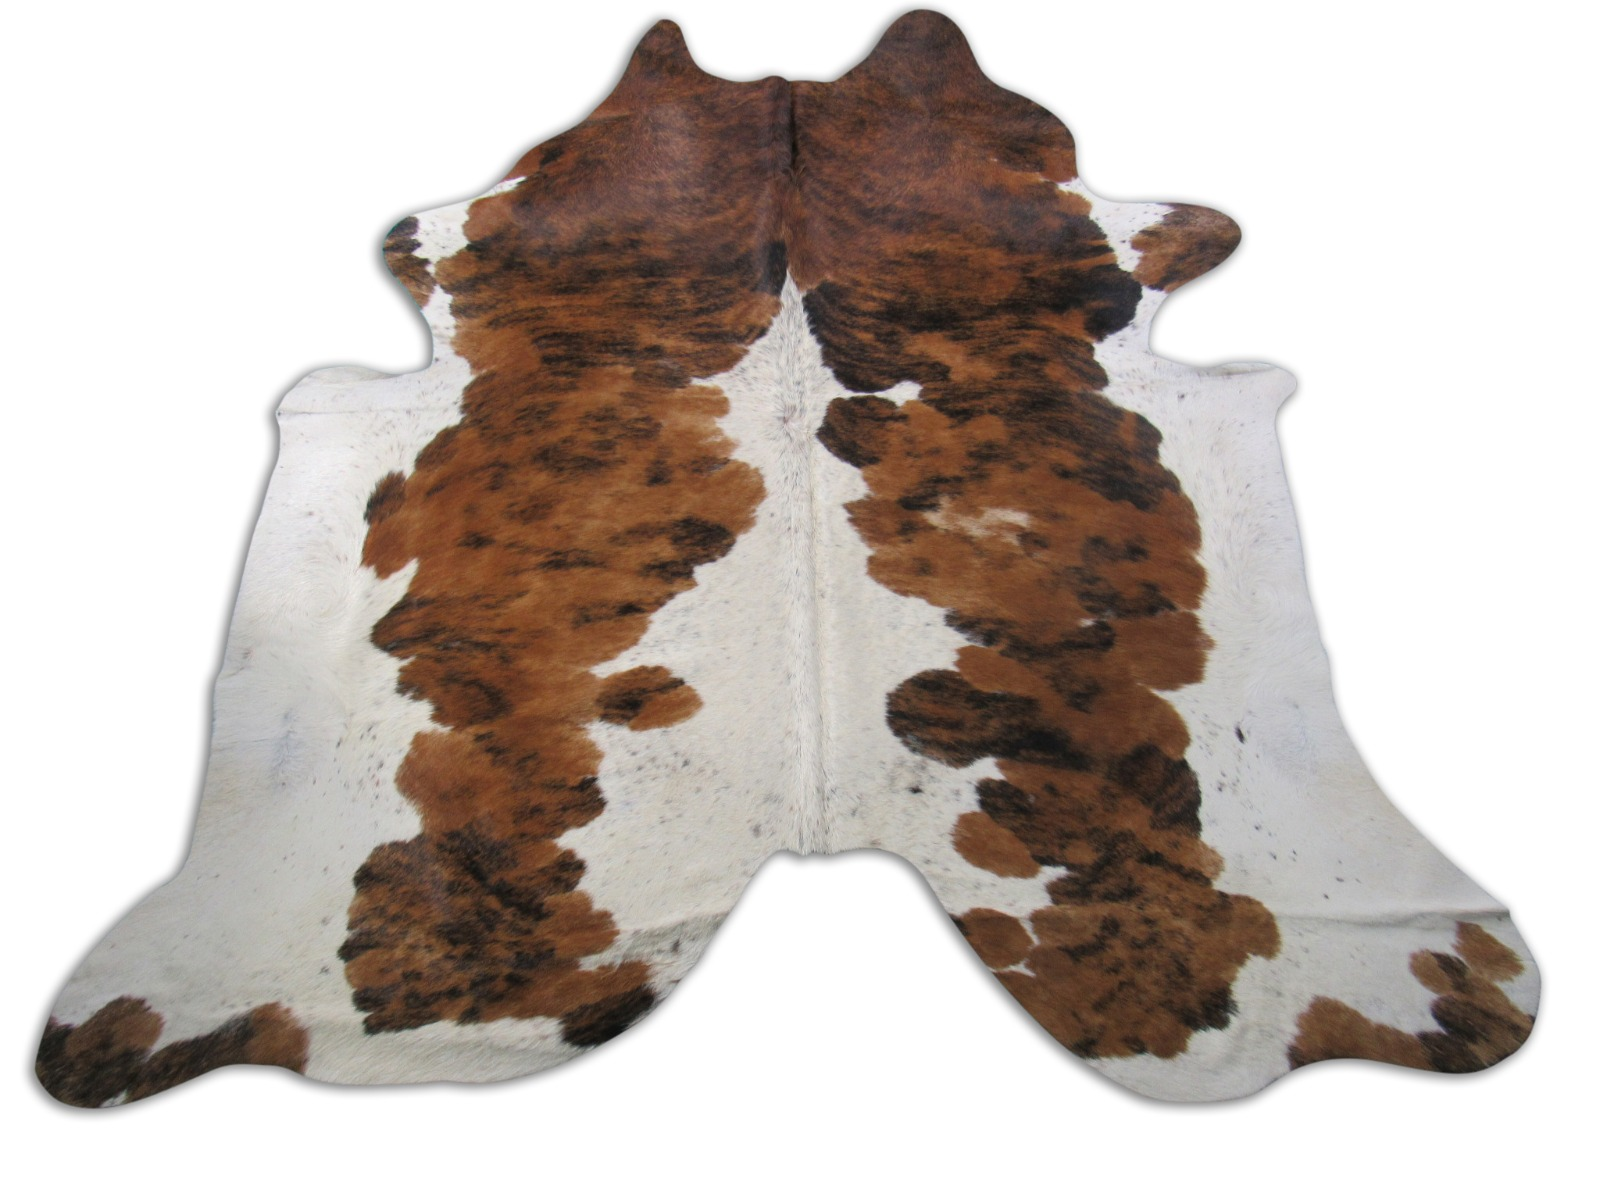 A-1299 Tricolor Speckled Cowhide Rug Size: 71/4' X 7'